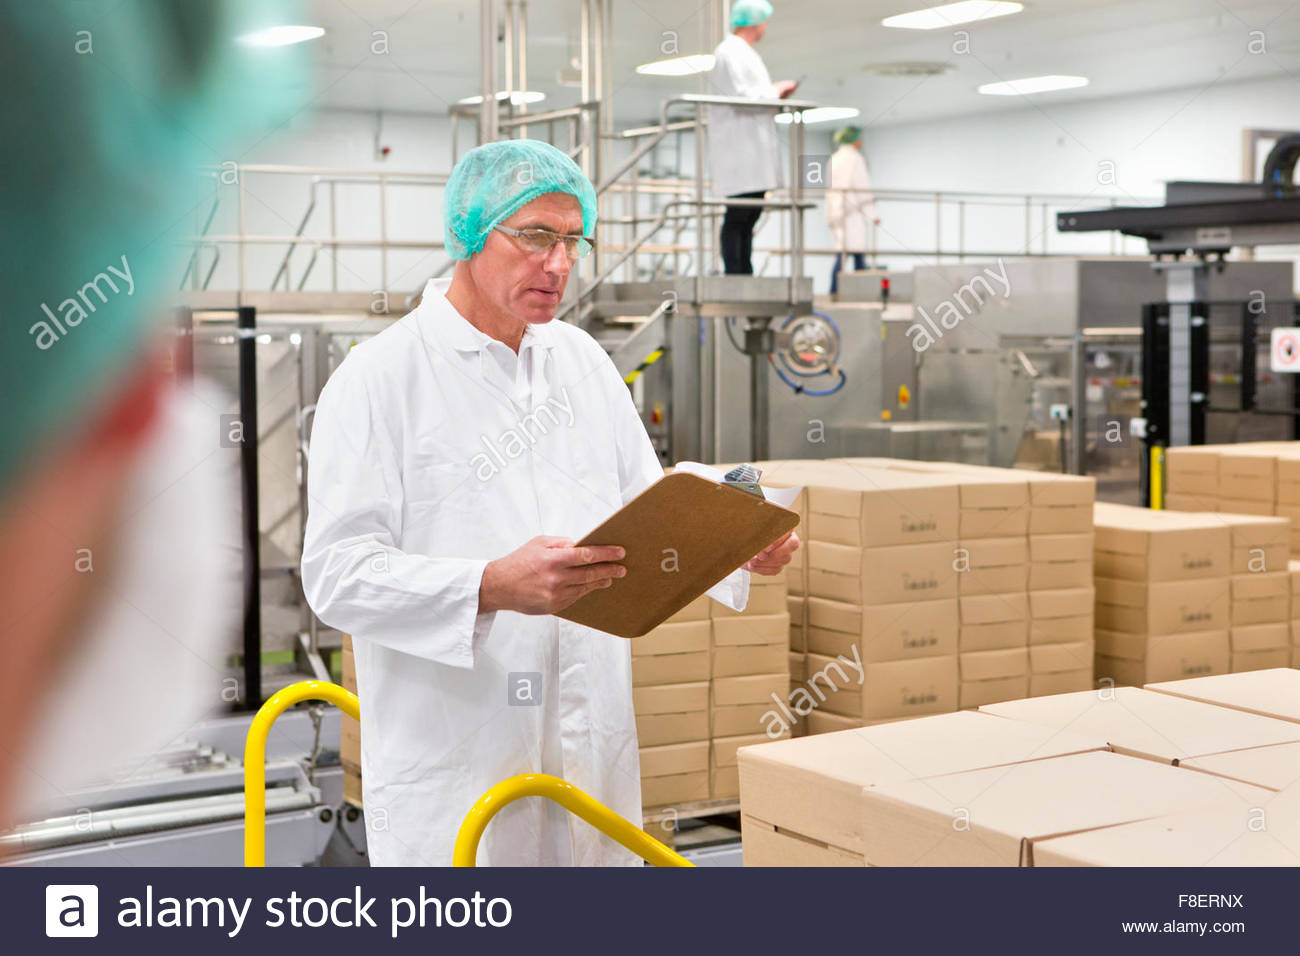 Worker with clipboard at food packaging production line - Stock Image